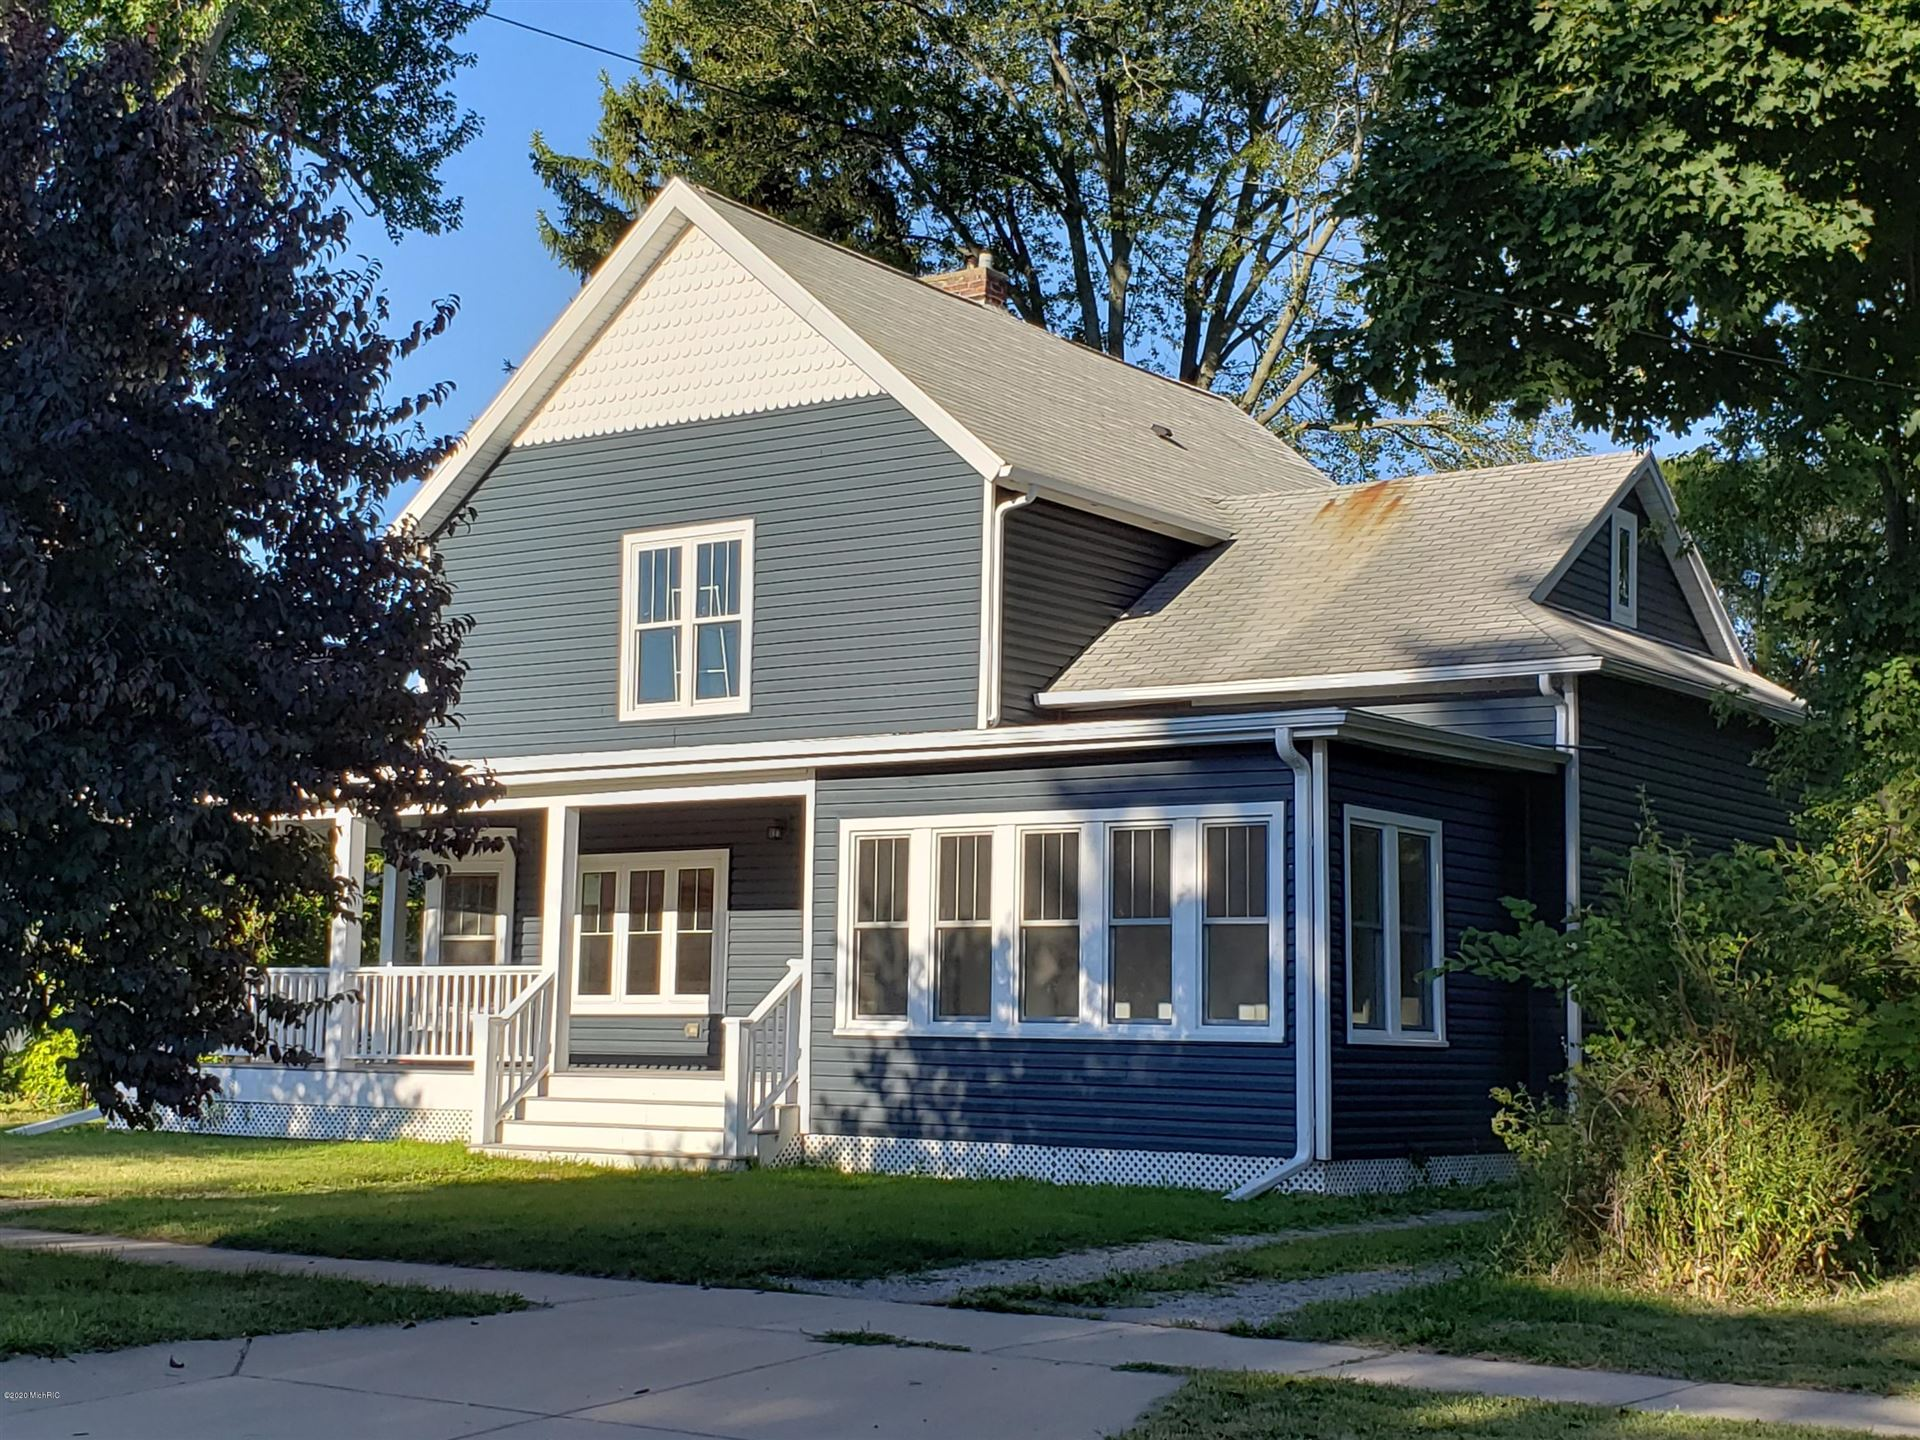 207 S ELM Street, Three Oaks, MI 49128 - MLS#: 20034064